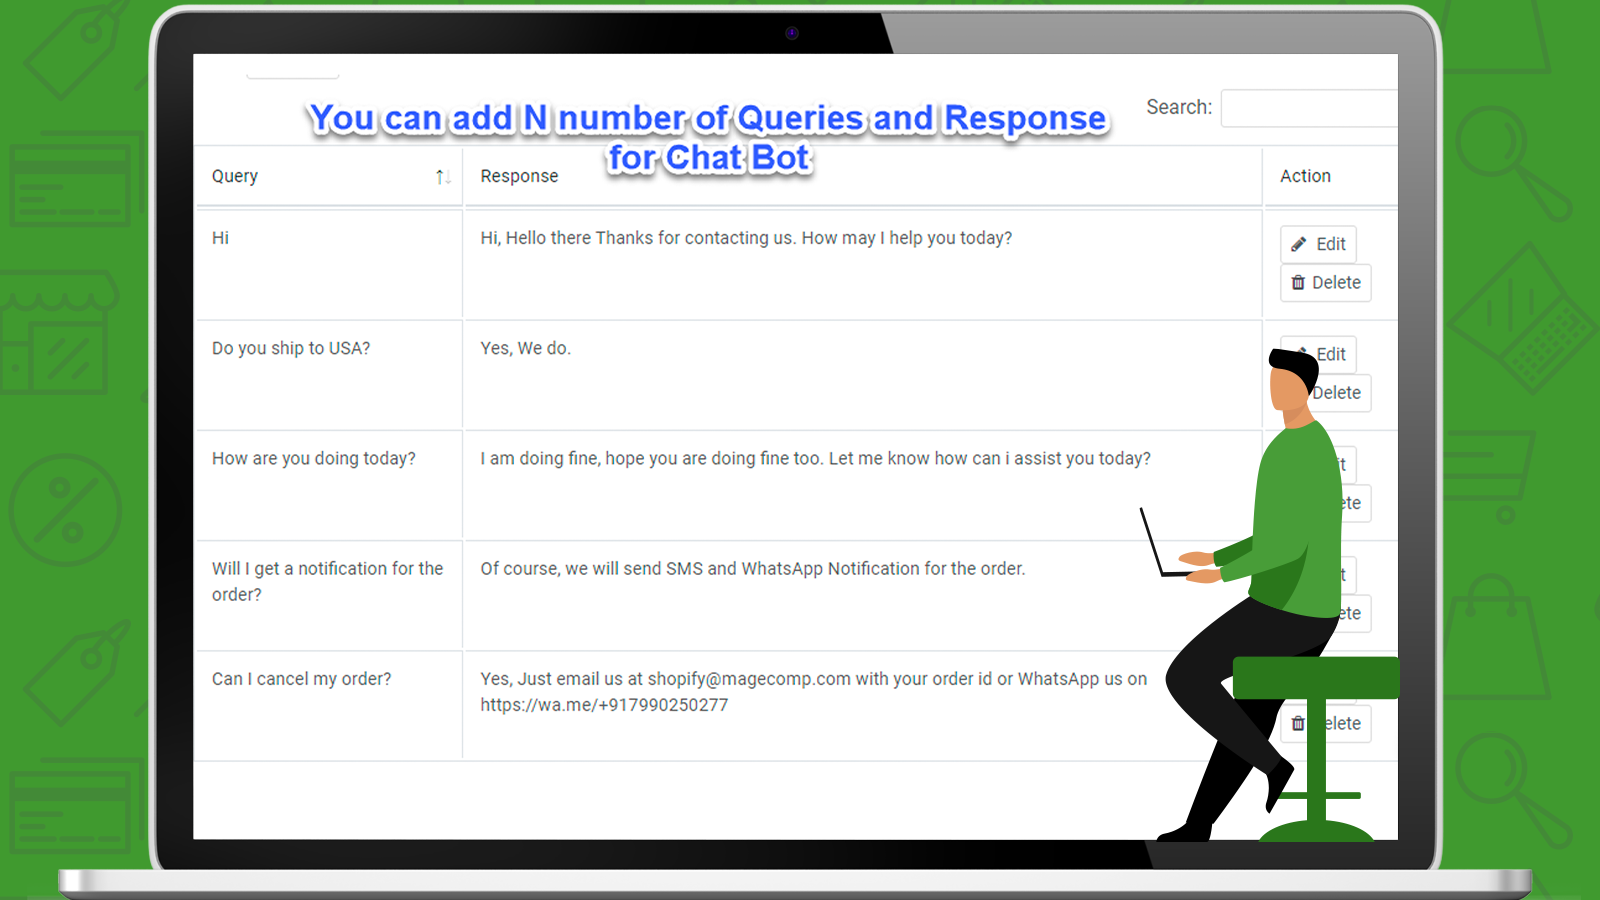 WhatsApp ChatBot Queries and Responses